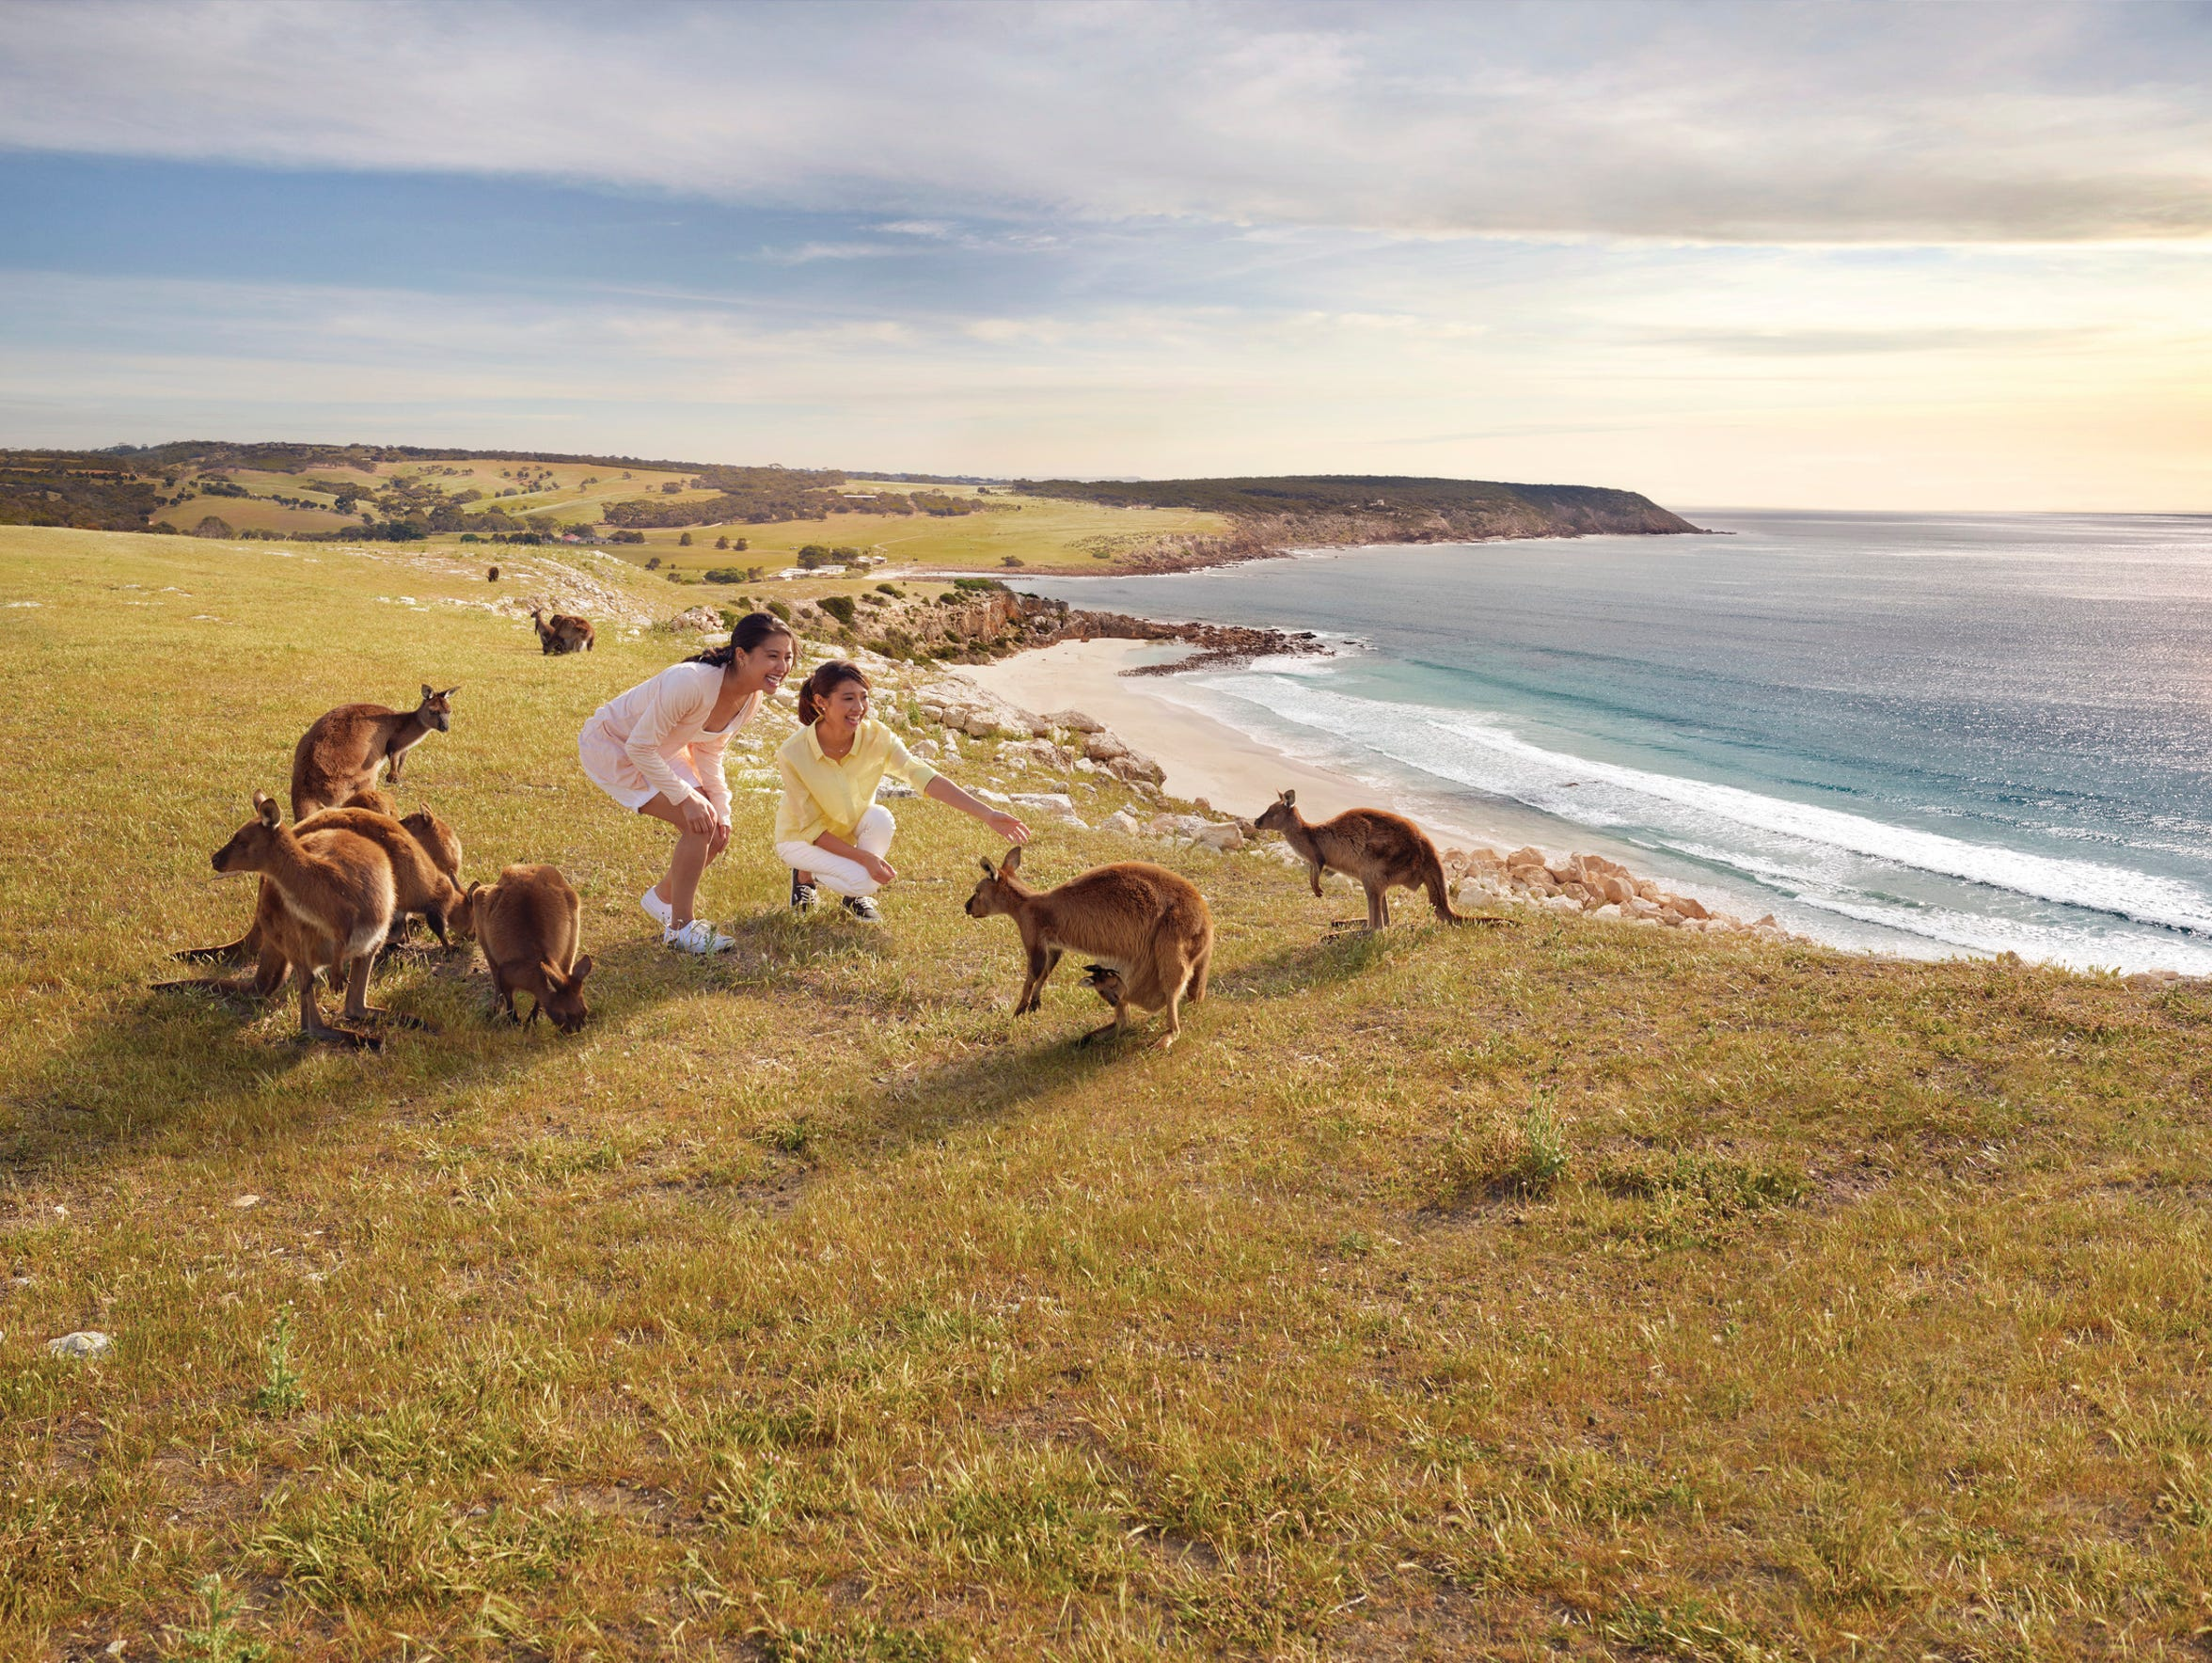 Spend an entire day exploring Kangaroo Island